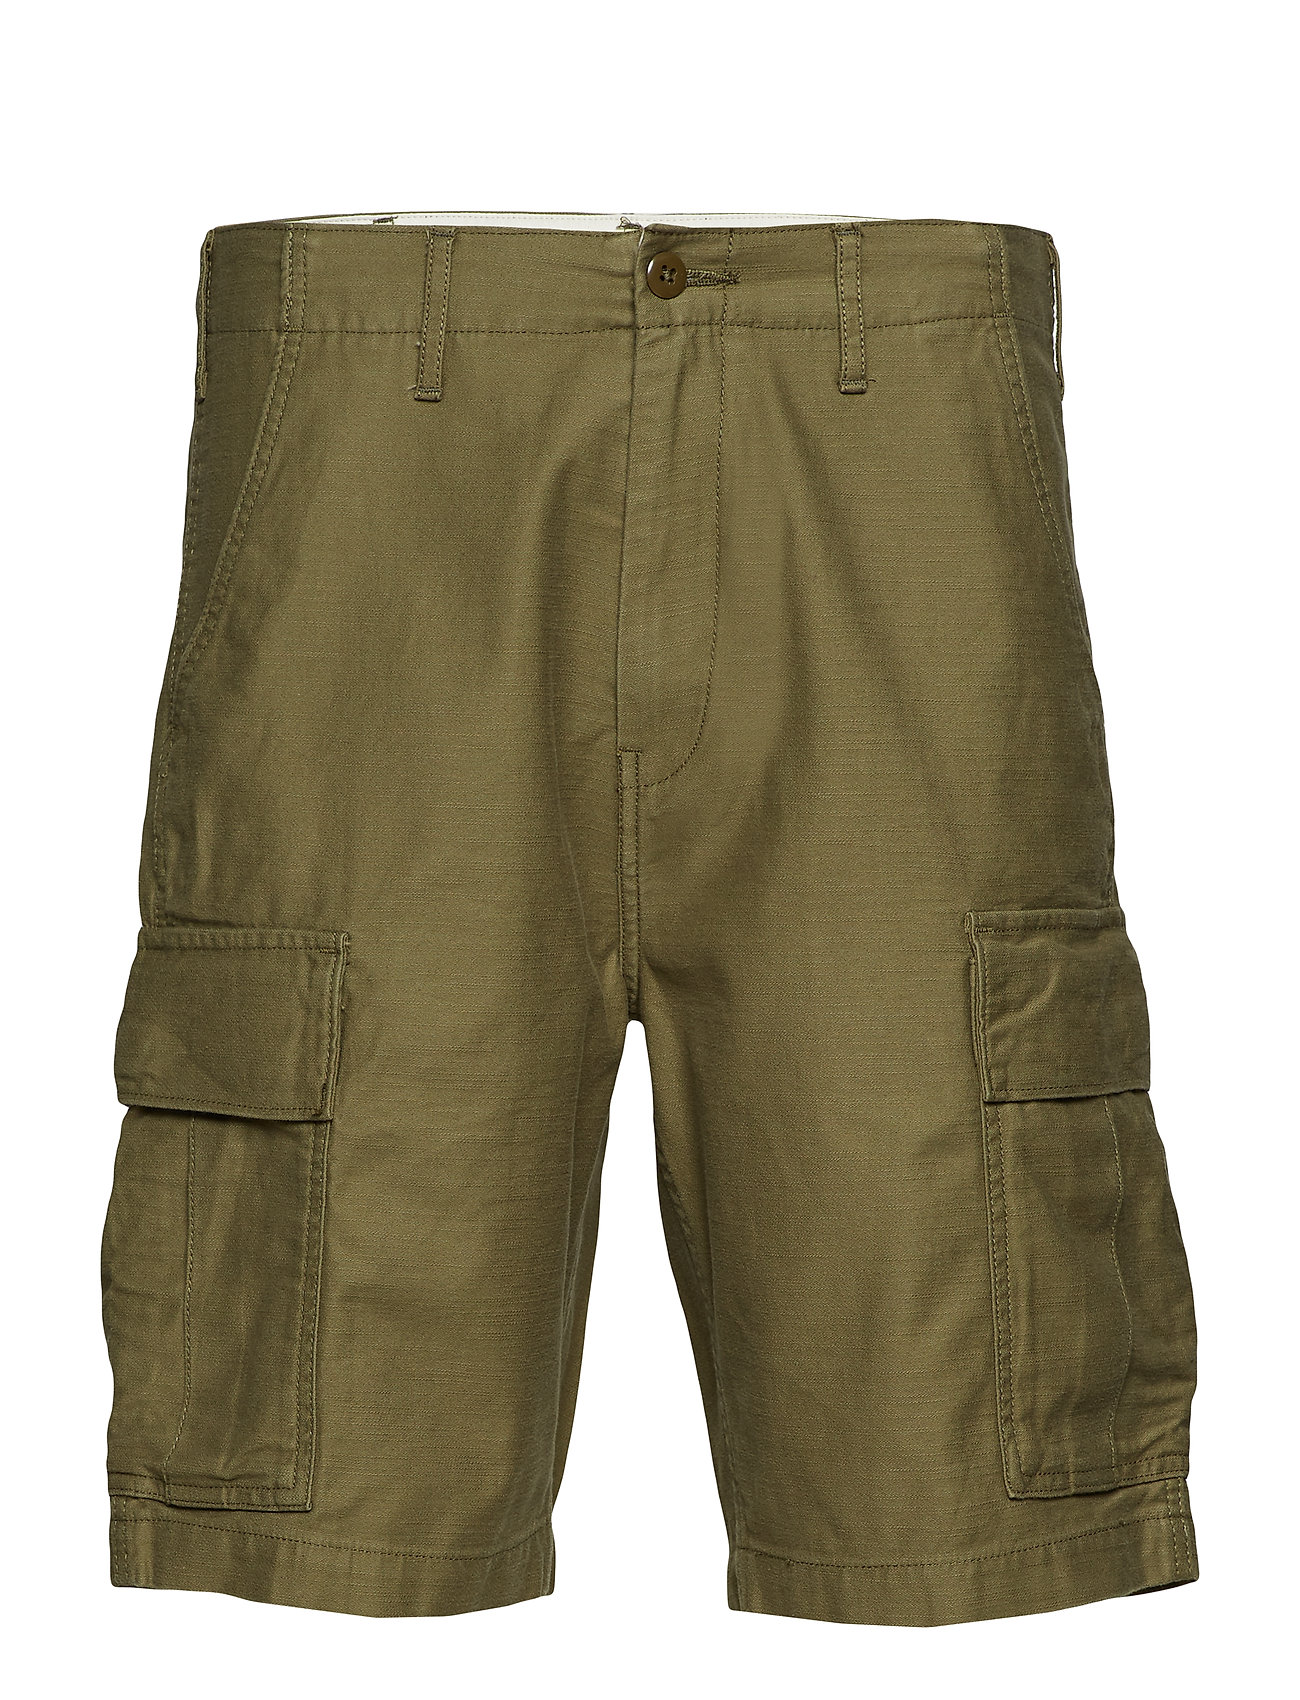 LEVI´S Men HIBALL CARGO SHORTS BURNT OLIV - GREENS